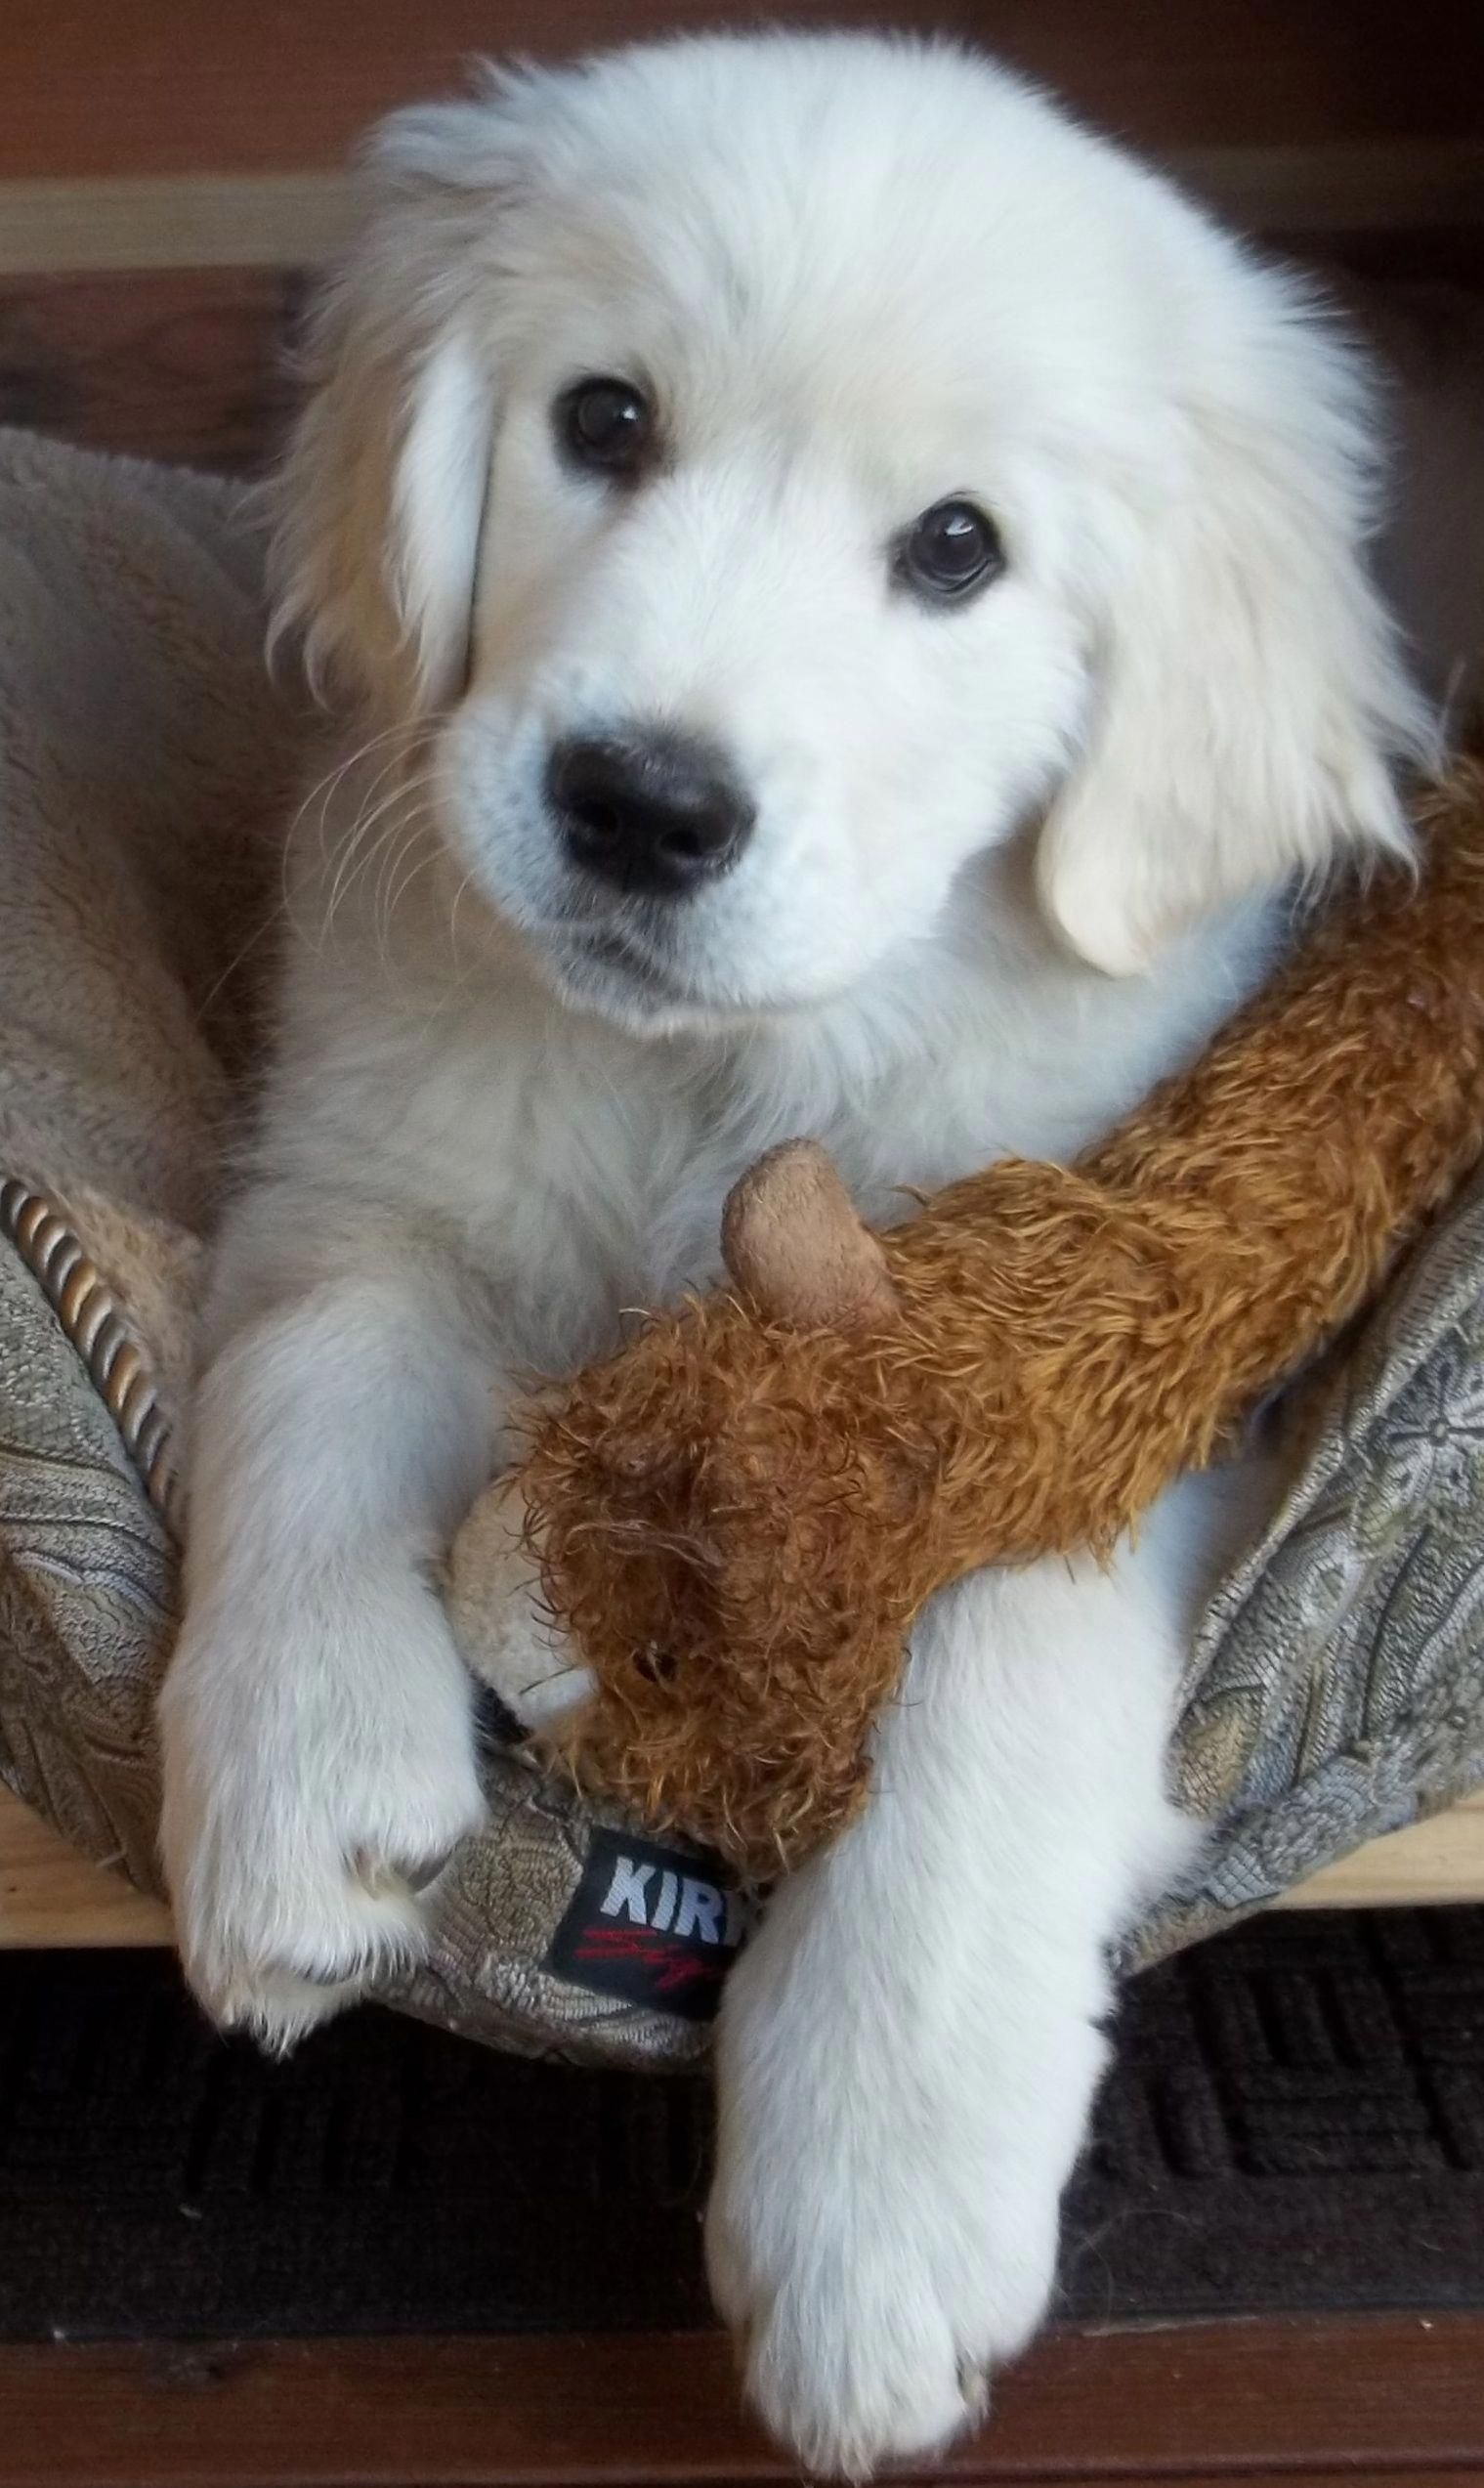 Golden Retriever English Cream Puppy Photo By Cmk Retrievers Tiere Hund Susse Tiere Hundebabys